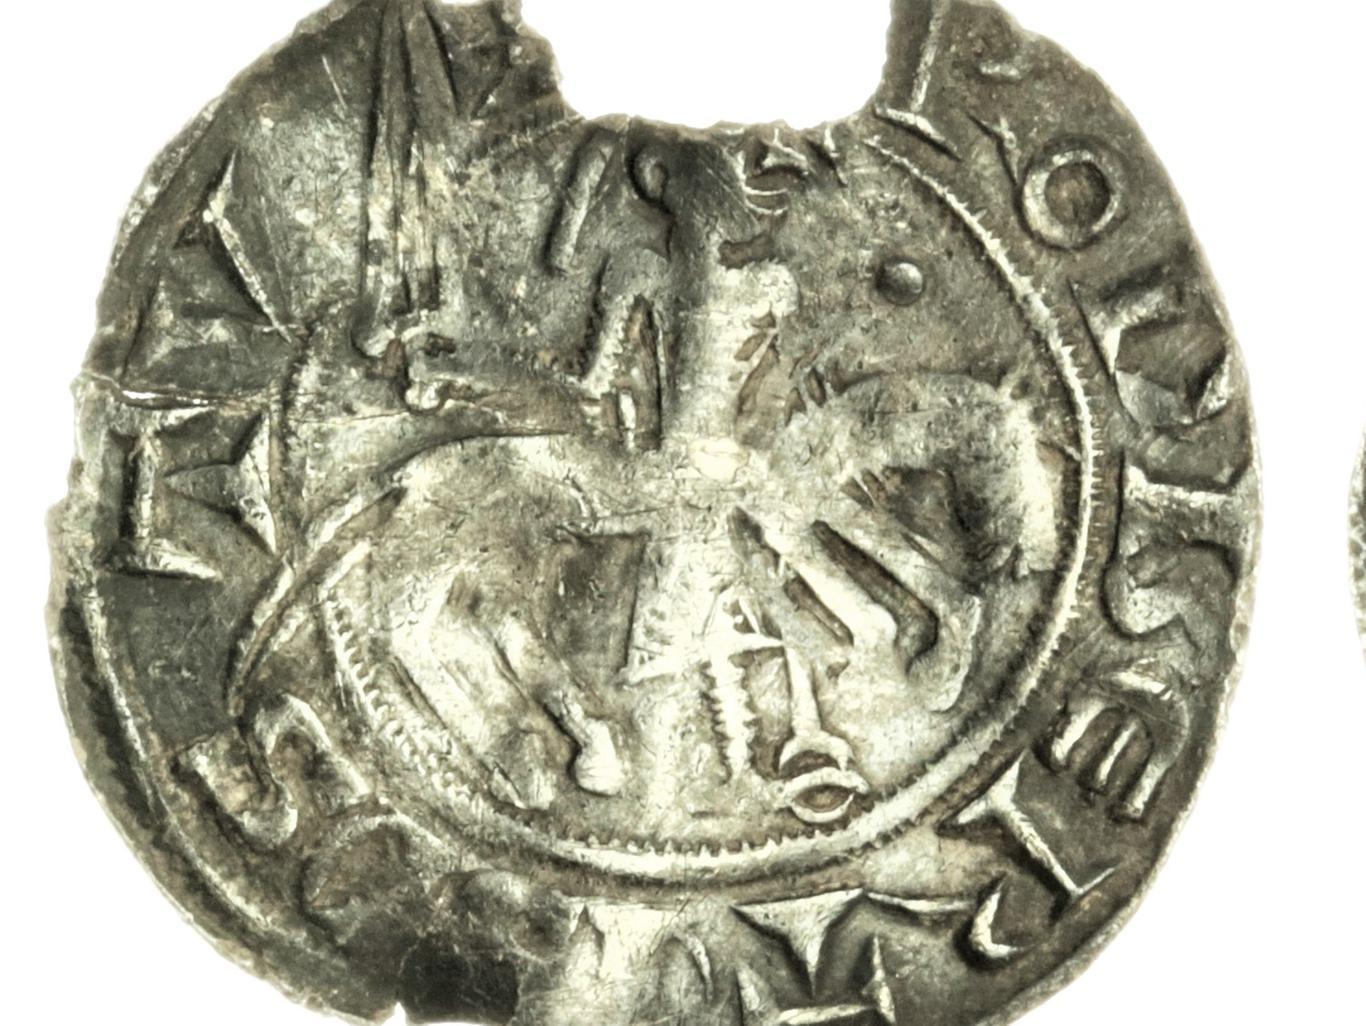 Rare silver coin depicting obscure Yorkshire baron which was found in a field to go under the hammer